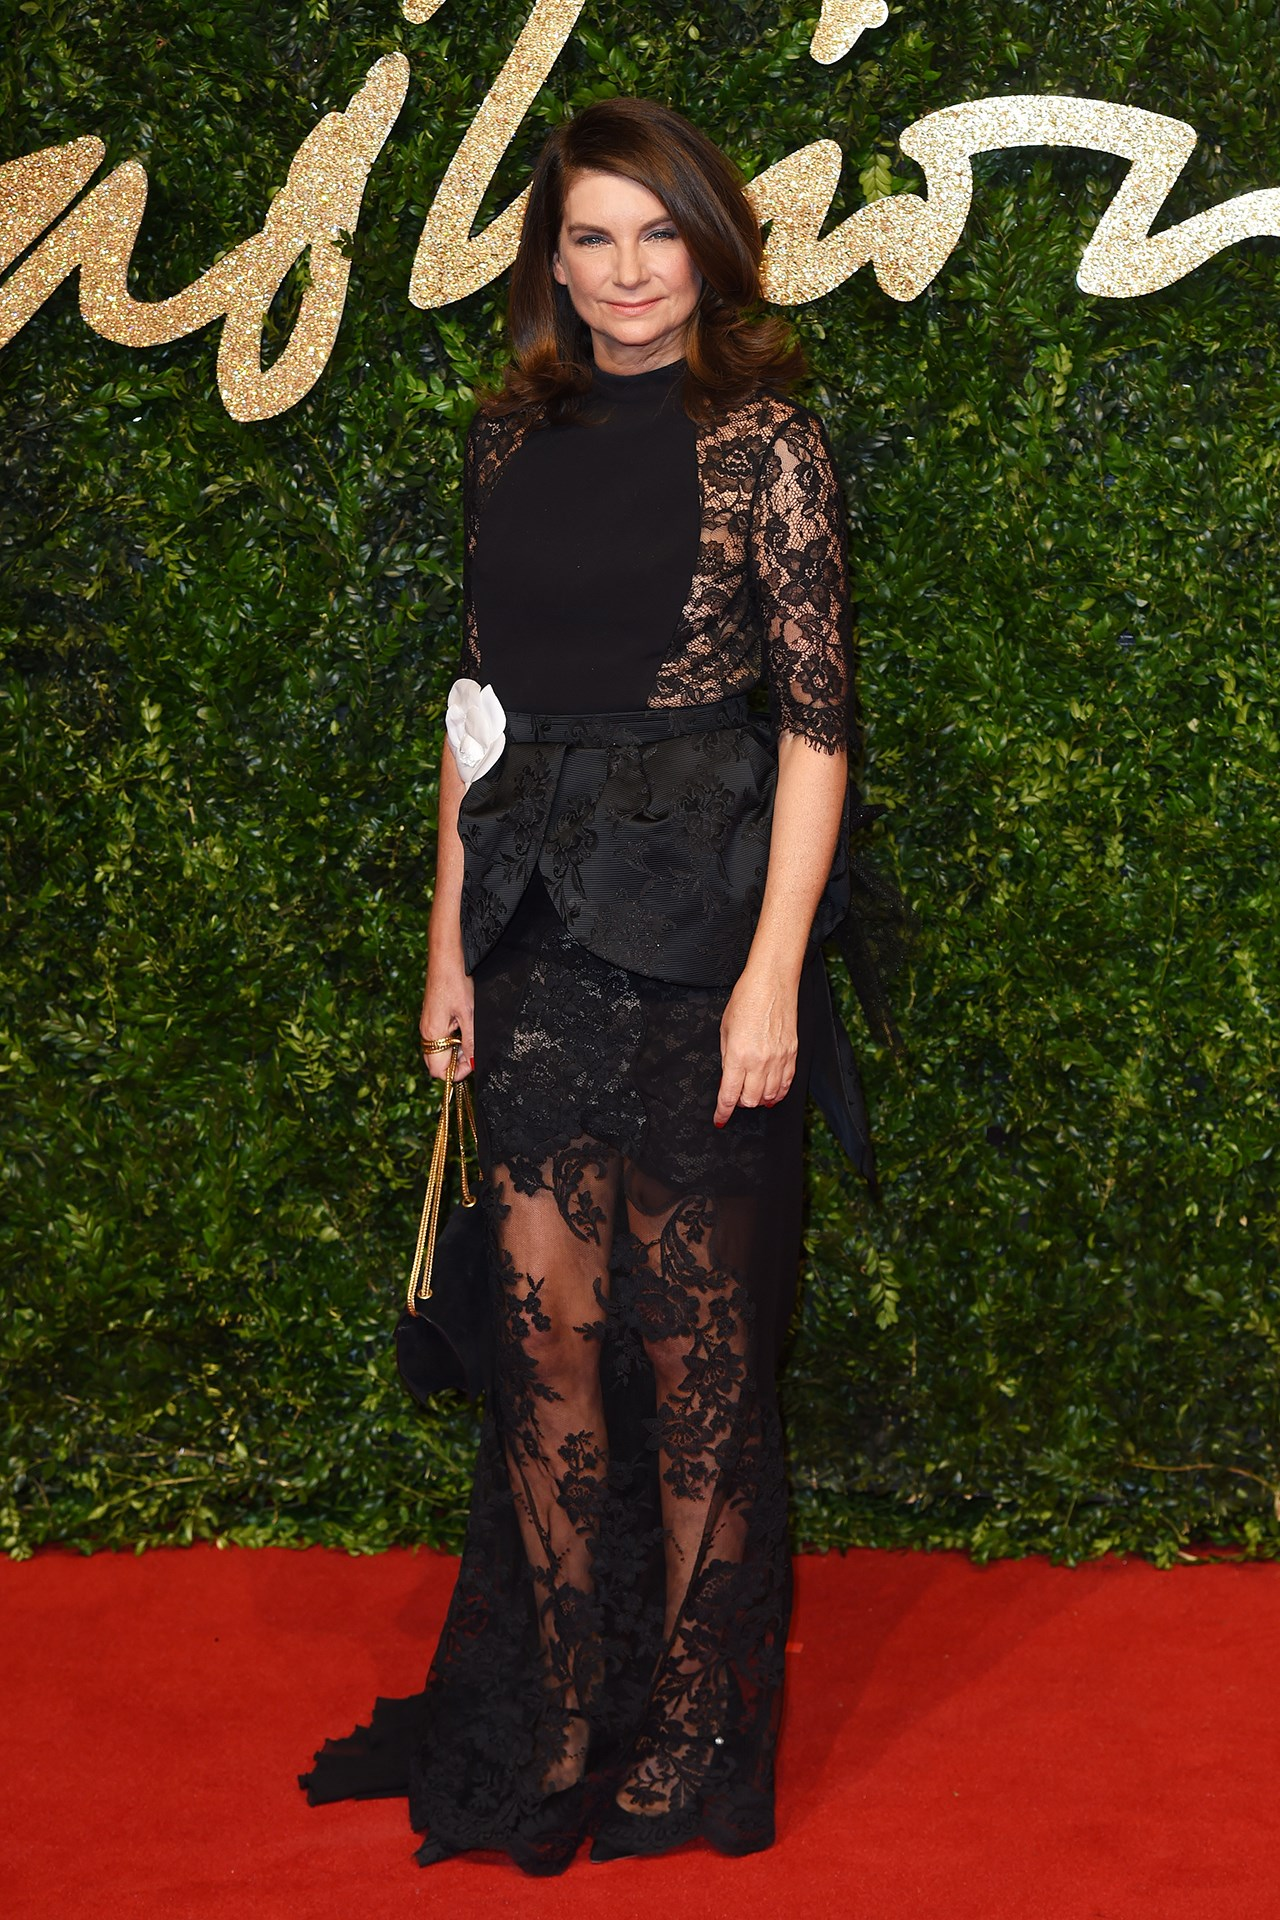 Founder of popular luxury e-commerce site Net-A-Porter and chairman of the British Fashion Council, Natalie Massenet has been awarded a Damehood in the Queen's New Year's Honours list for services to fashion and retail.